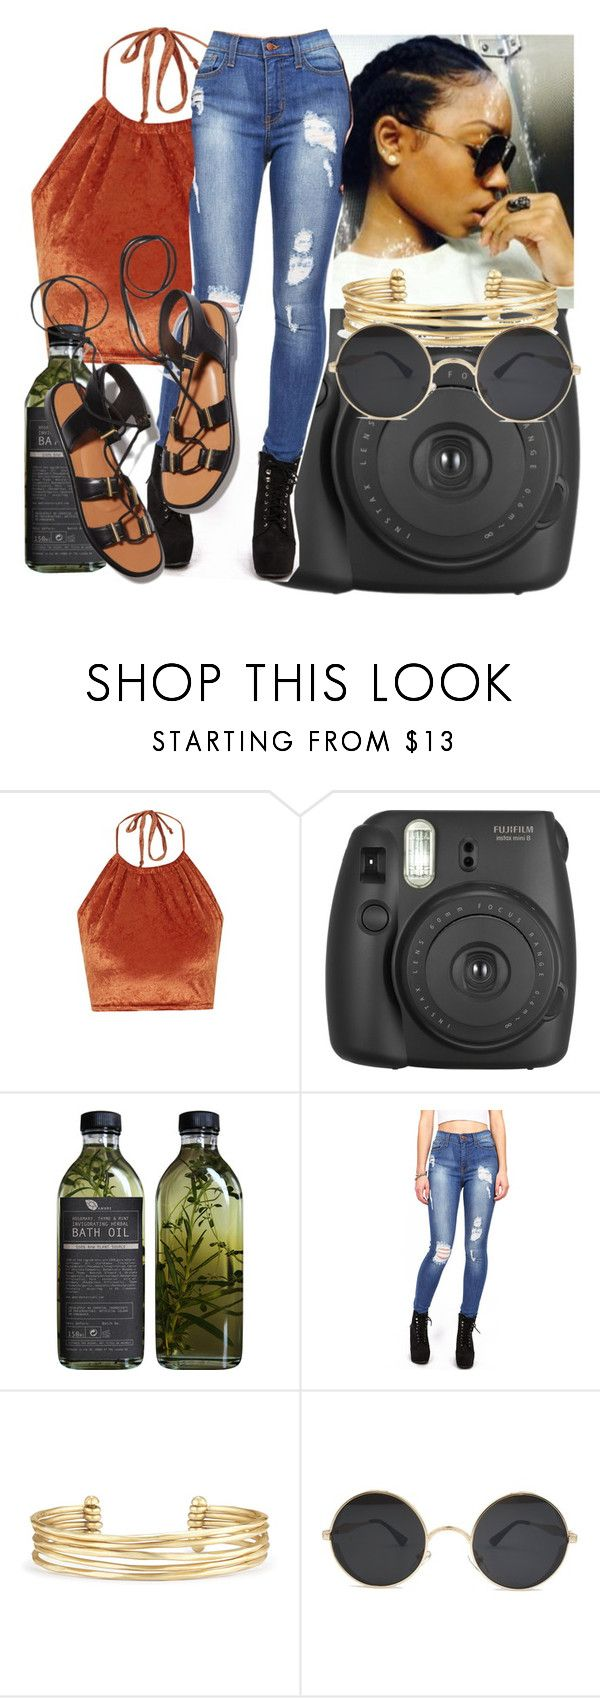 """""""🌞"""" by theyenvy-jorii ❤ liked on Polyvore featuring The Ragged Priest, Fujifilm, AMBRE, Stella & Dot and Rosetta Getty"""